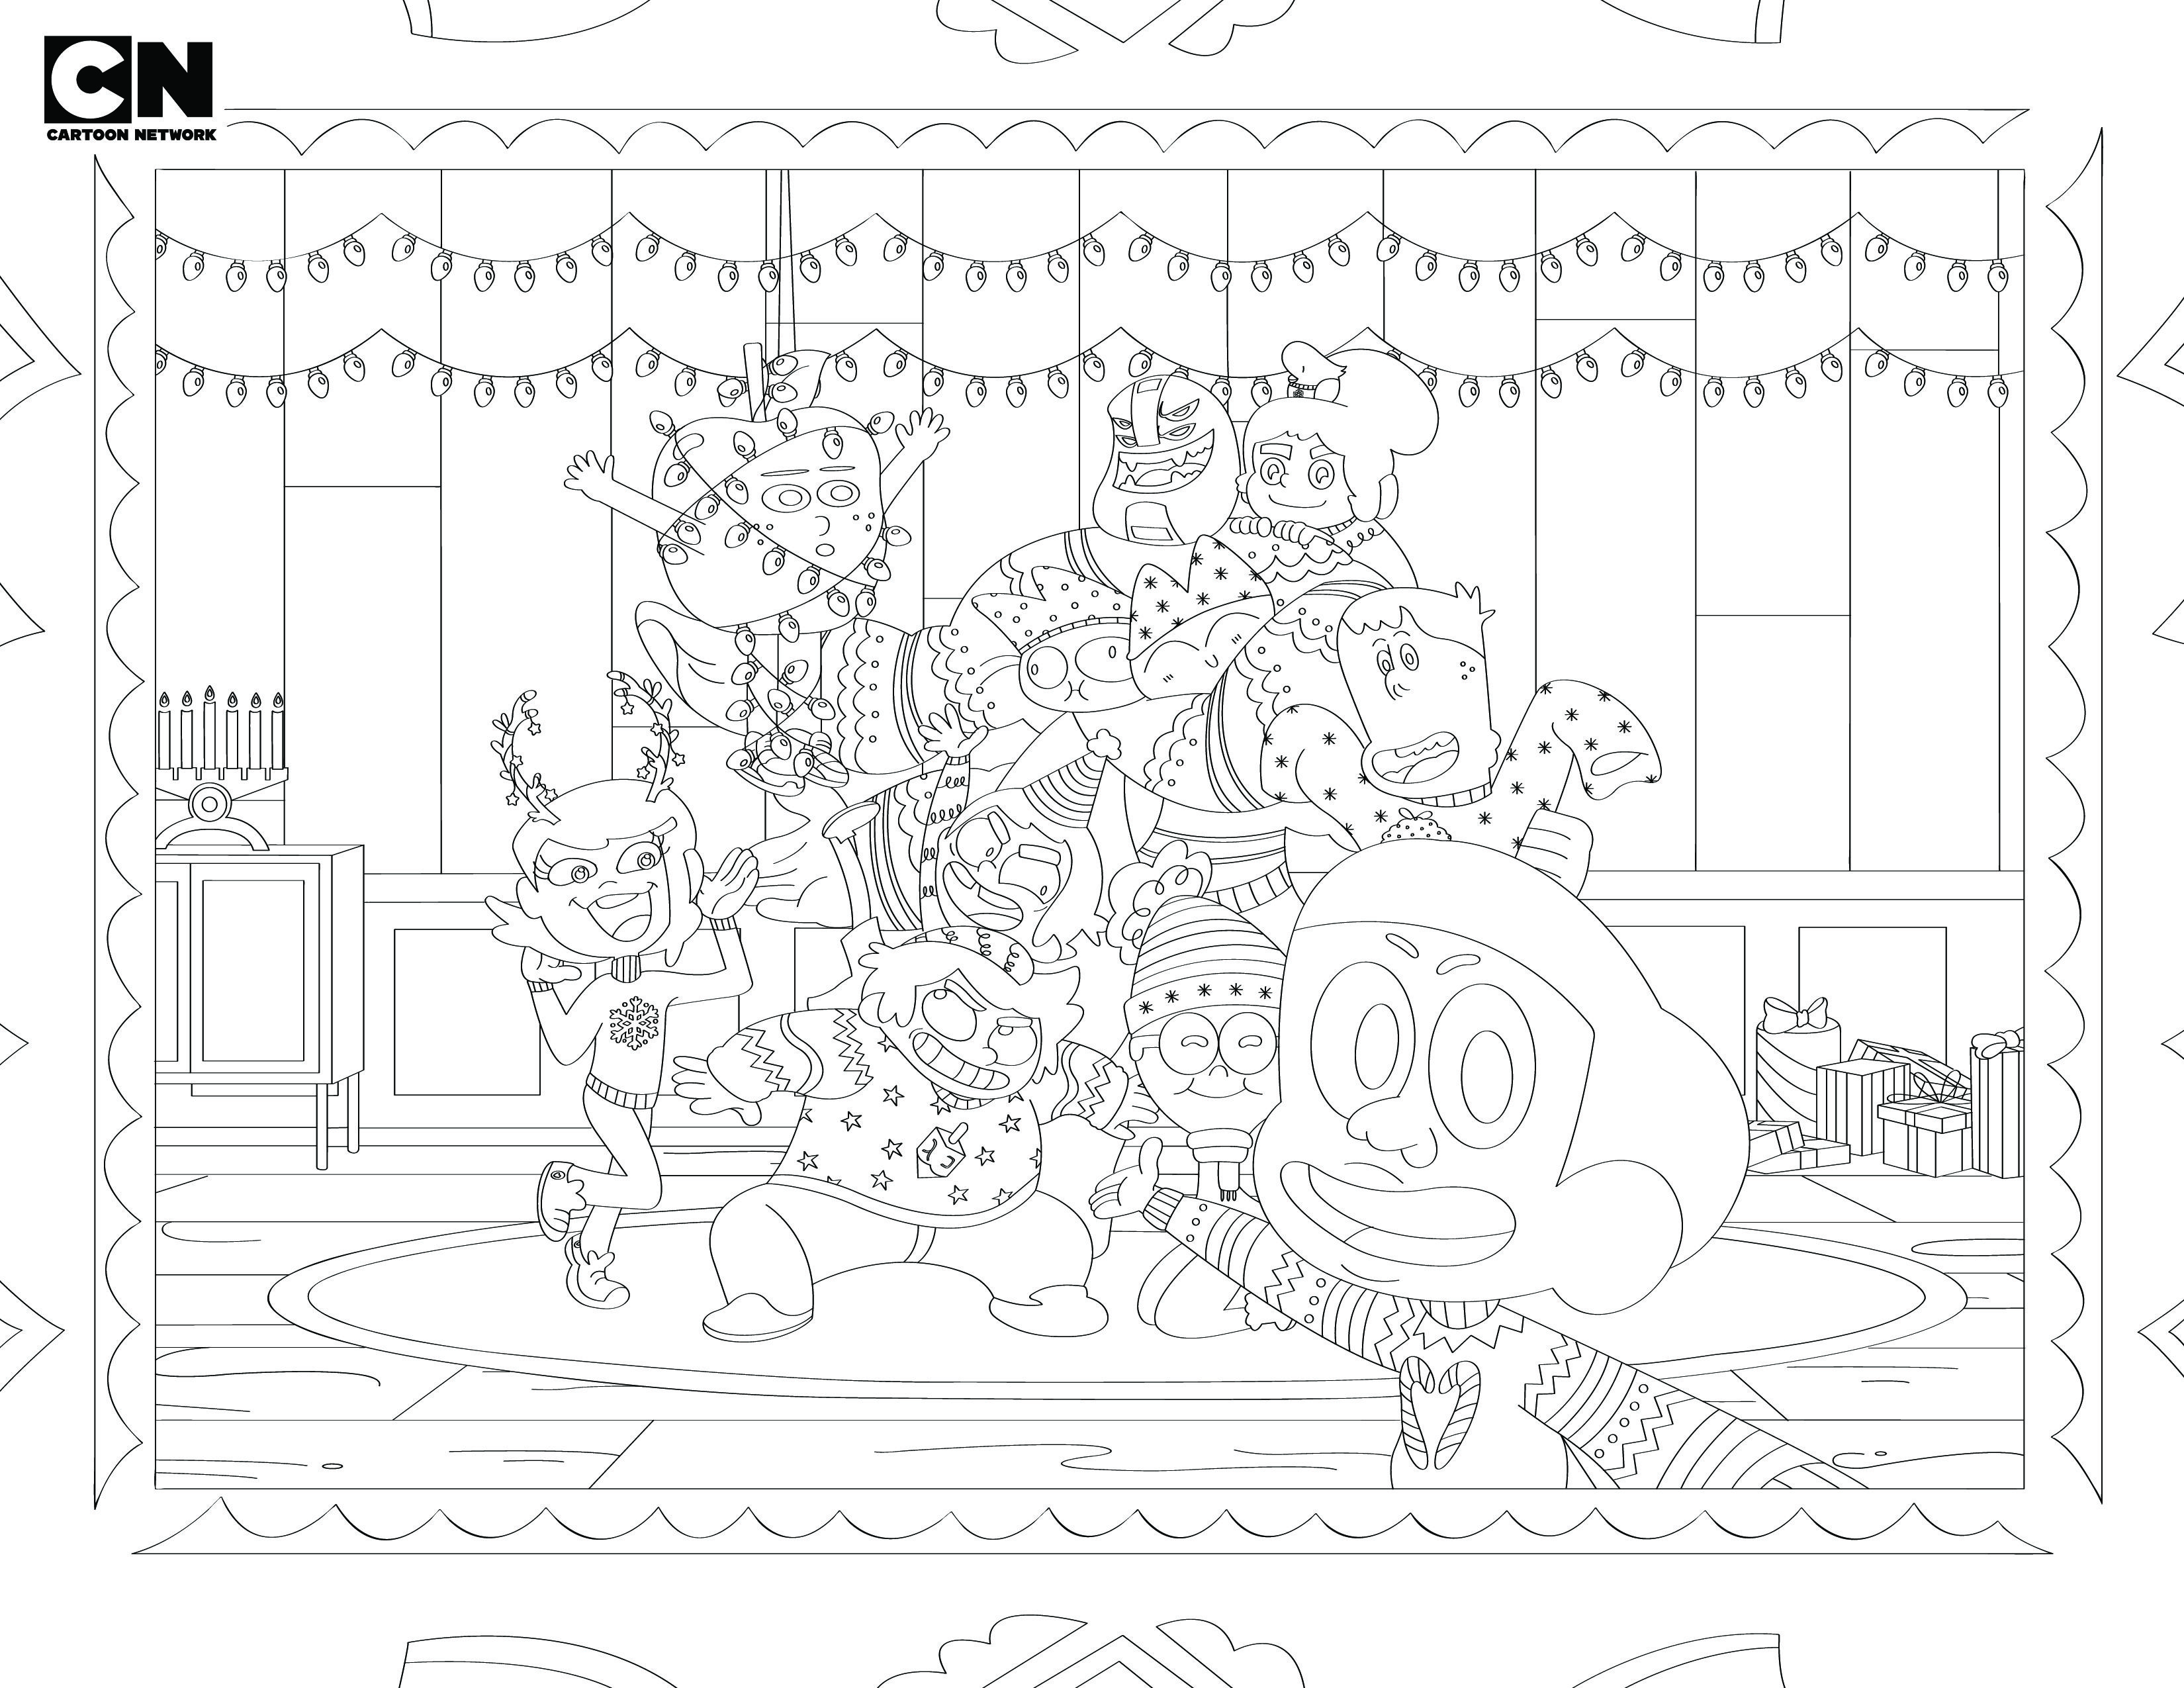 Cartoon Network Holiday Coloring Page Coloring Pages Holiday Color